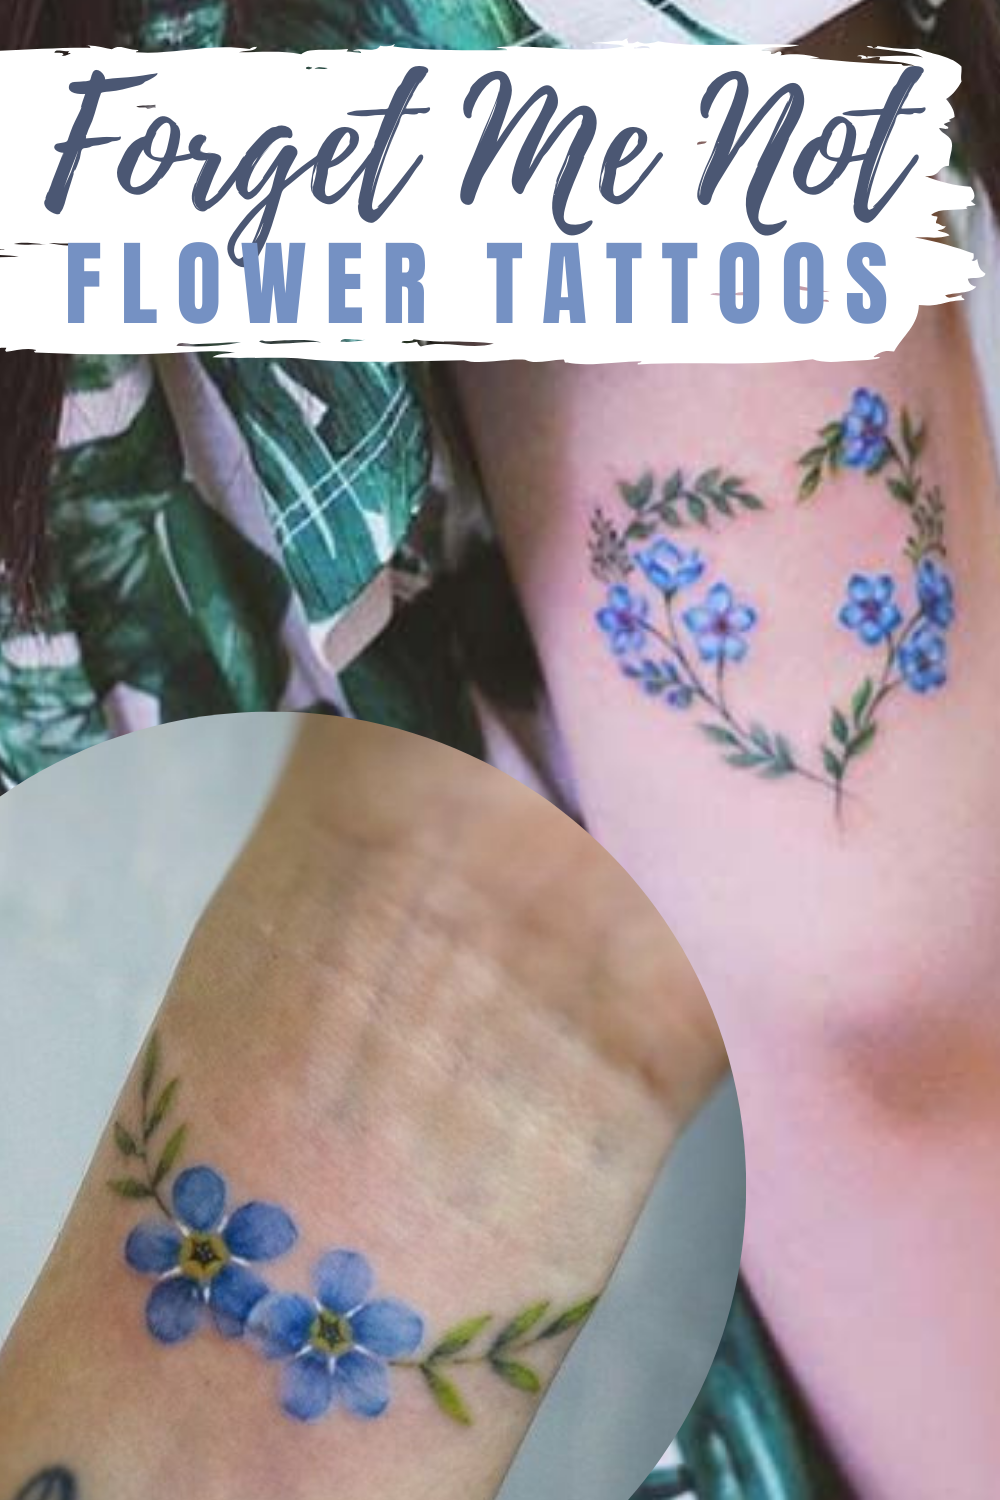 Stunning Forget Me Not Flower Tattoos